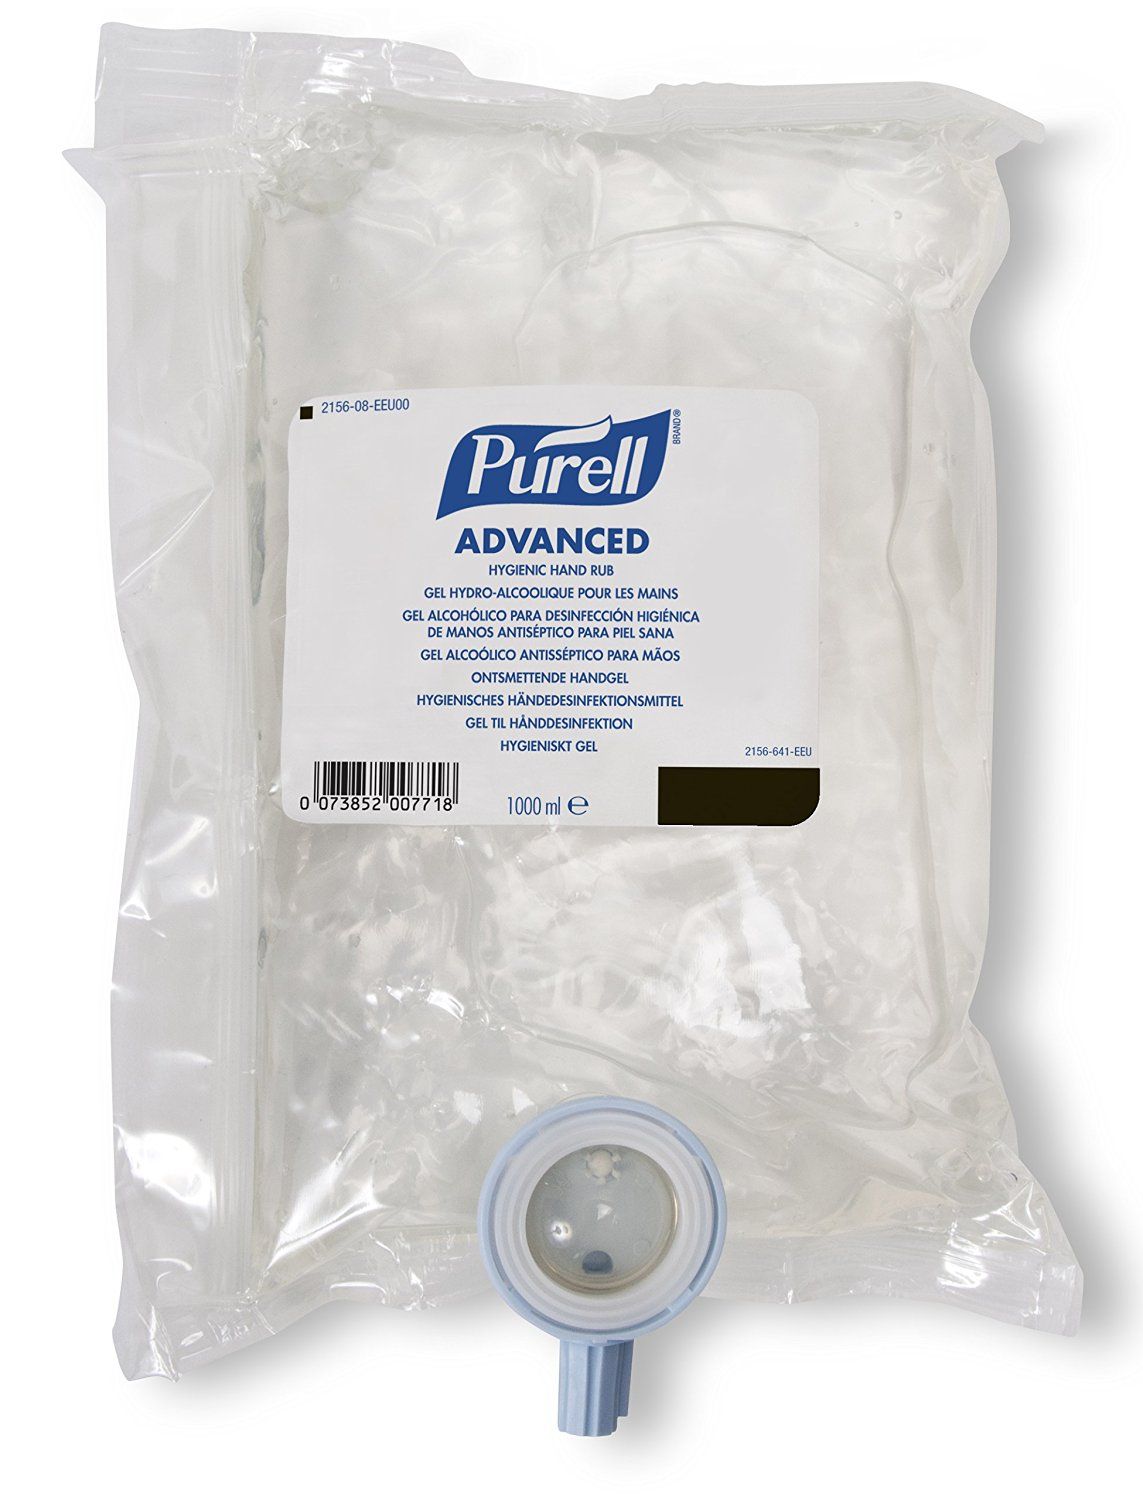 Aviz Biocid - Gel Dezinfectant Purell Nxt 1000 Ml sanito.ro